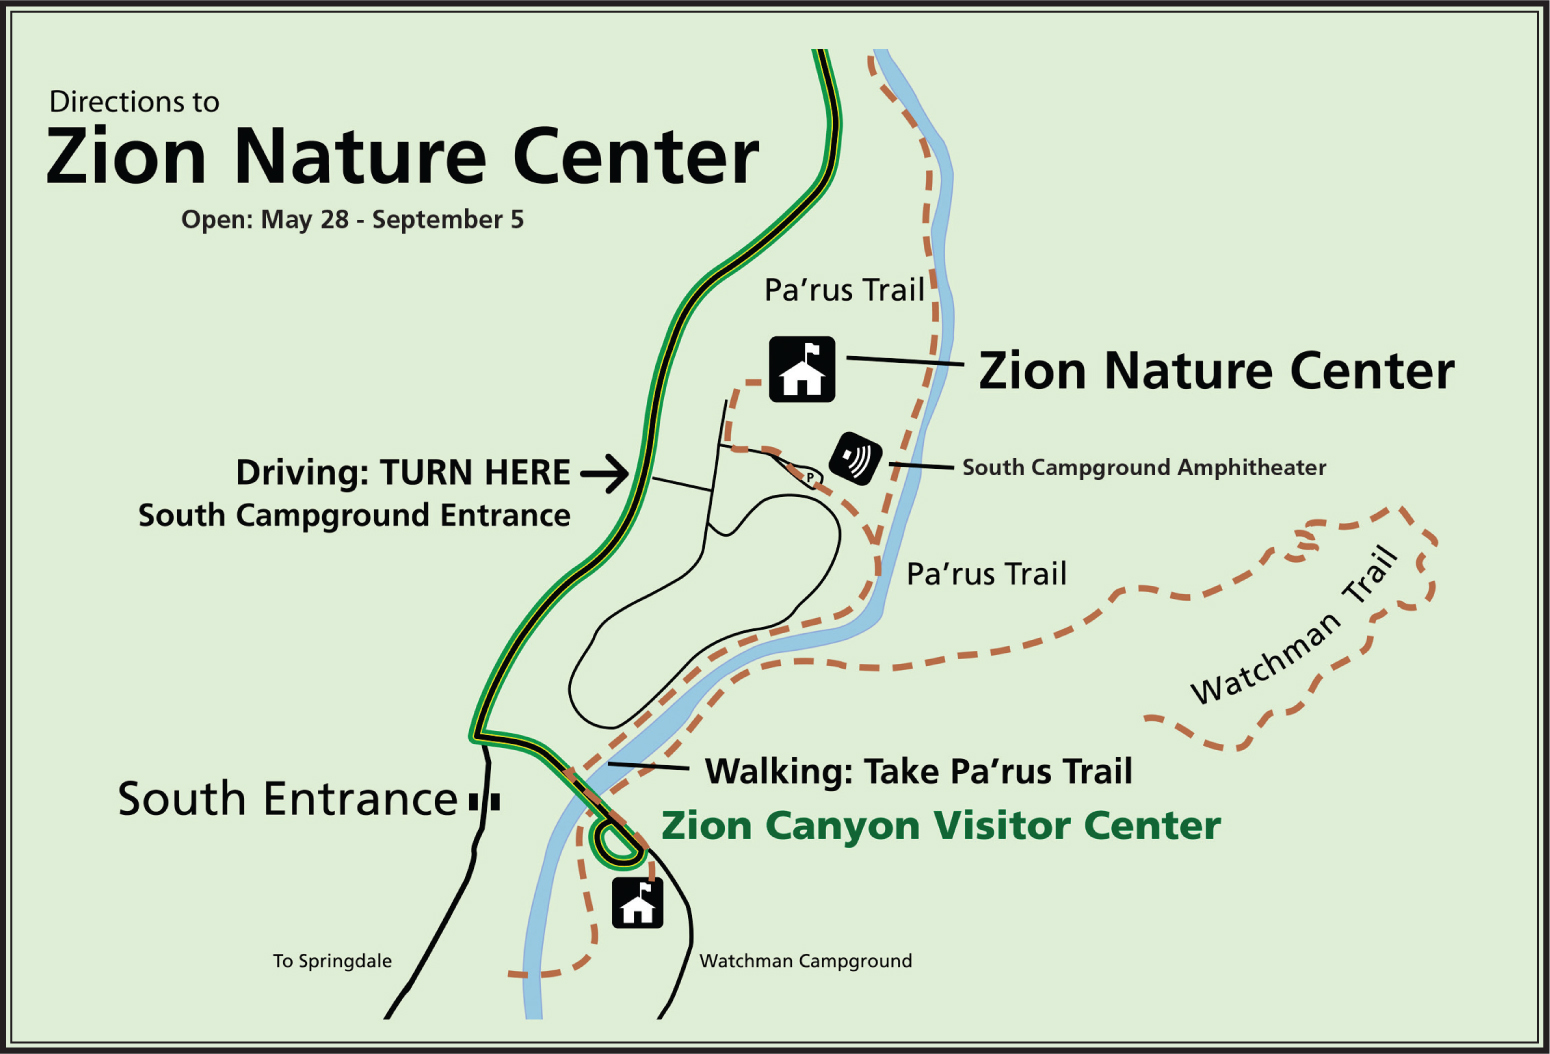 Maps - Zion National Park (U.S. National Park Service) Zion National Park Museum Map on redwood national park map, symbol national park on map, angels landing trail map, acadia national park on a map, bryce canyon np map, canyonlands national park road map, city of rocks national reserve map, bryce canyon road map, sequoia national park map, grand canyon map, grand staircase escalante national monument map, zion subway map, salt lake city map, death valley map, monument valley map, st. george map, antelope canyon map, denali national park and preserve map, arches national park topographic map, lake tahoe map,